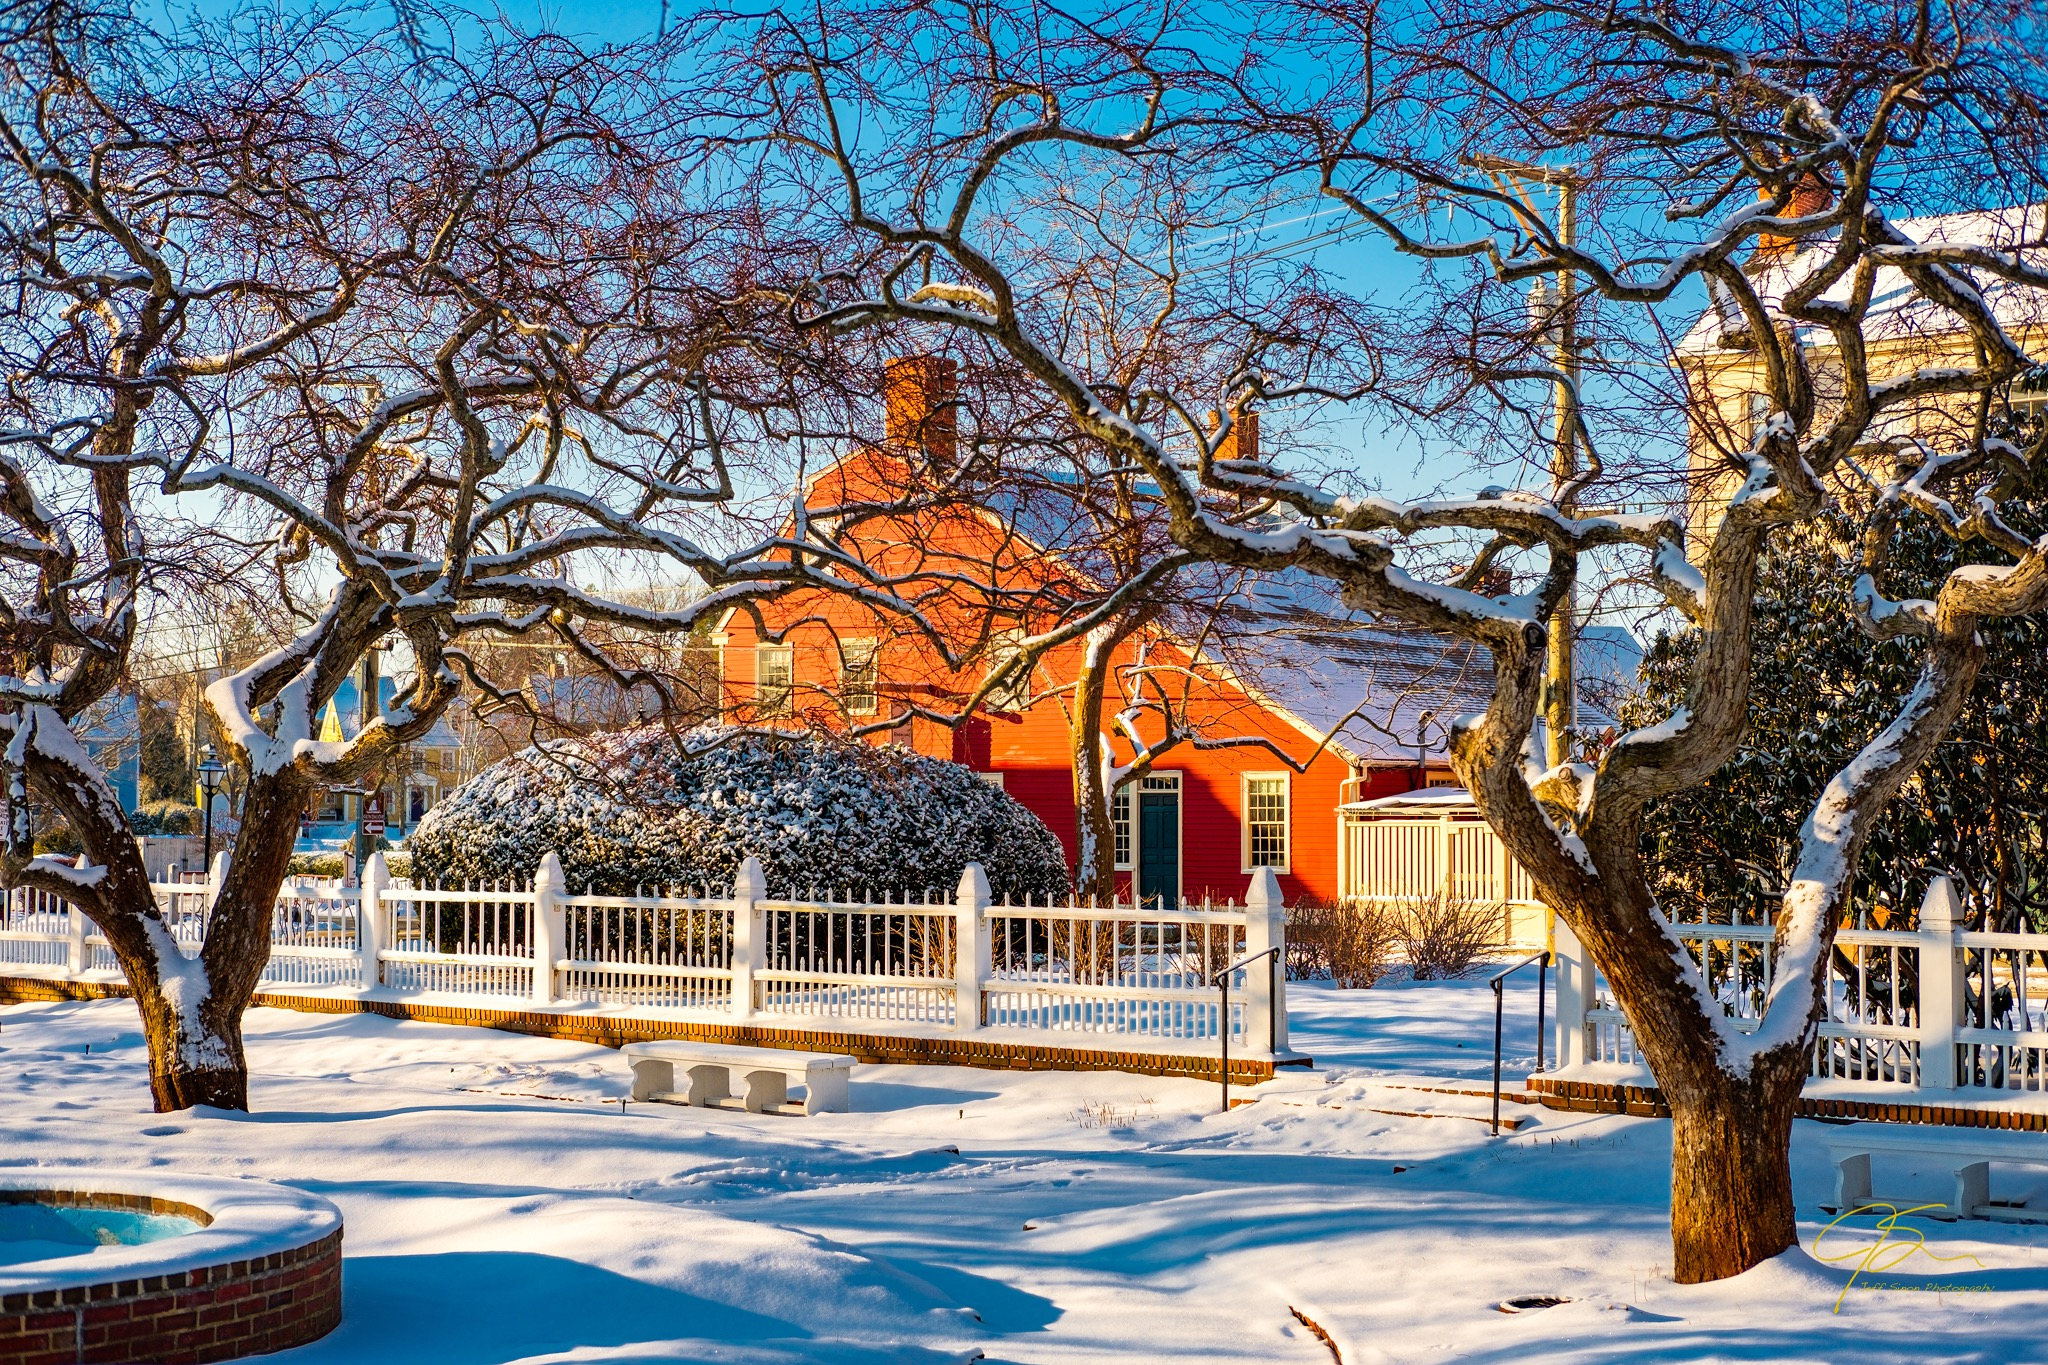 viewing through the Prescott Park gardens after a fresh blanket of snow has fallen. The gnarled crab apple trees frame the red saltbox style house across the street from the garden.